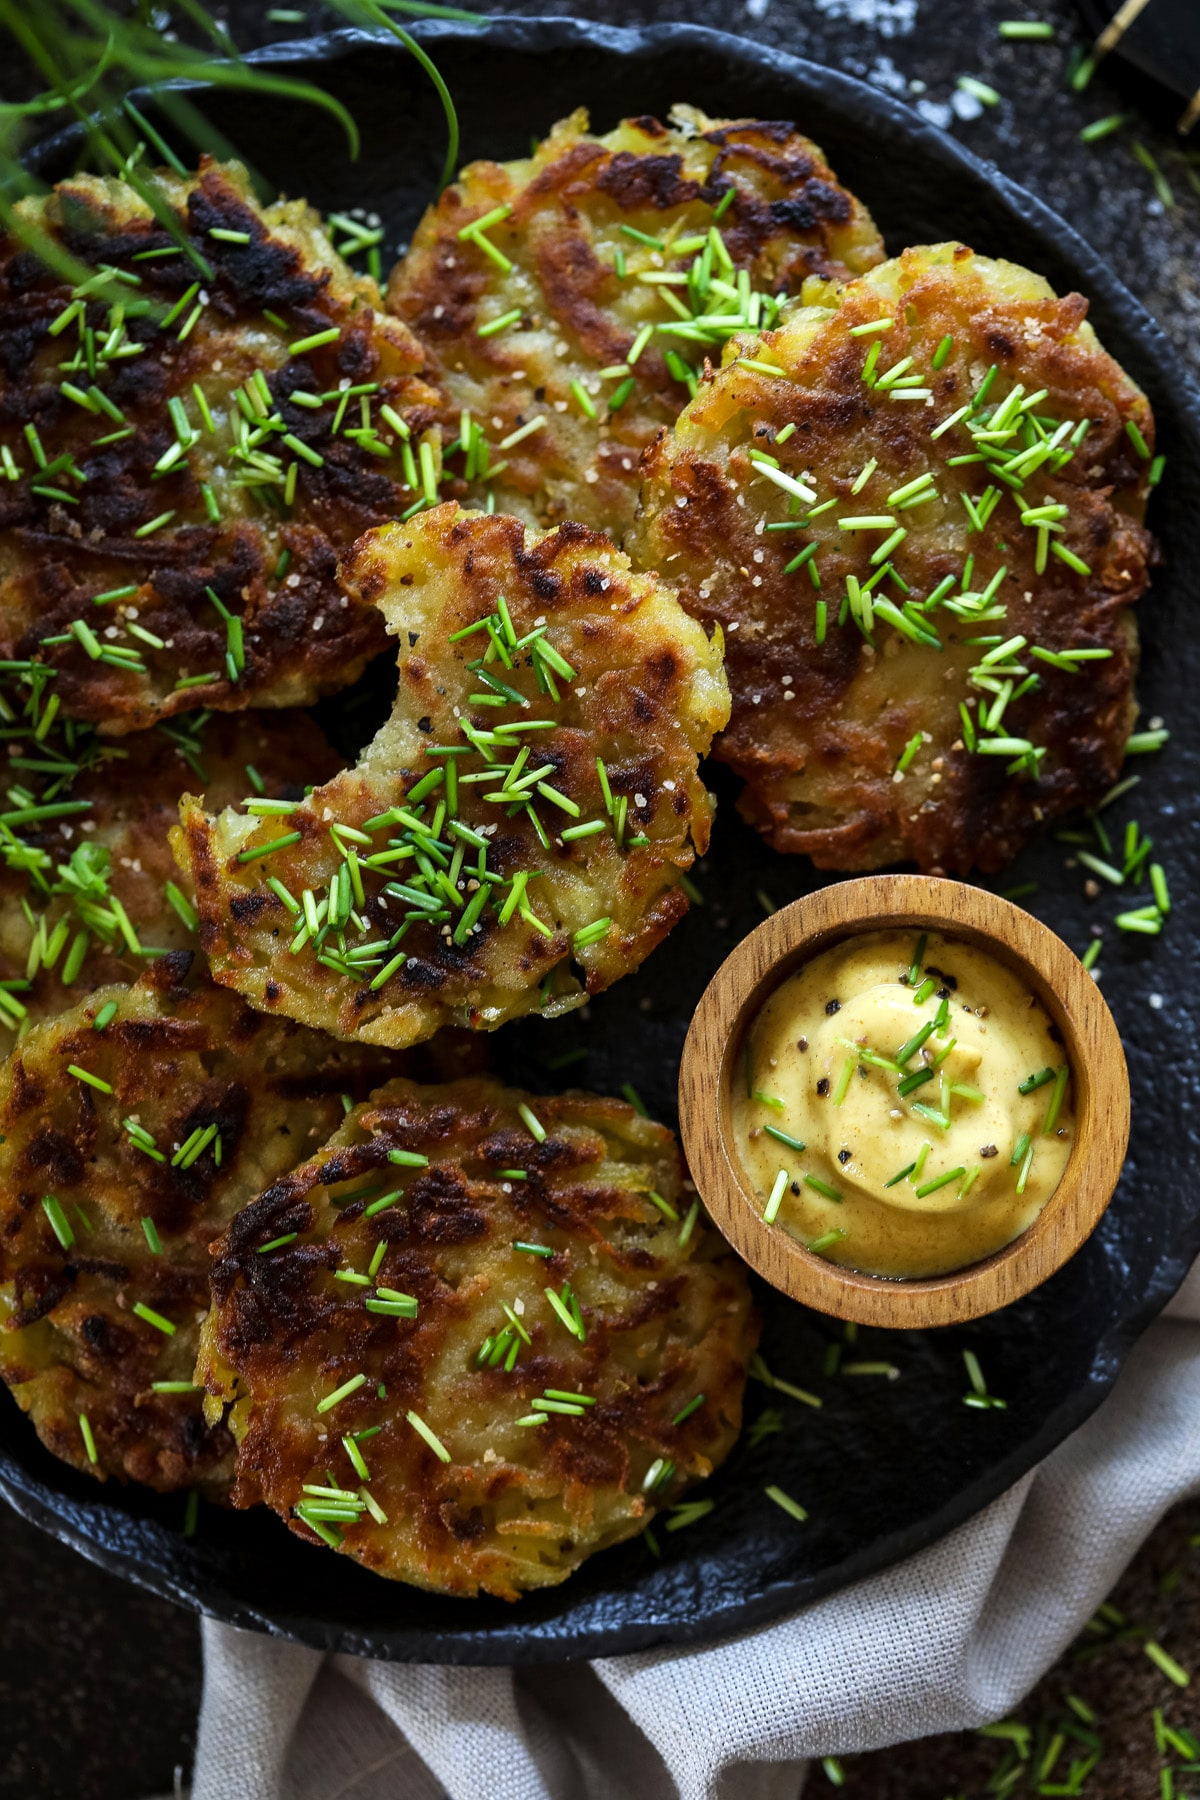 A Plate with German Potato Pancakes and a Small Bowl of Mustard.